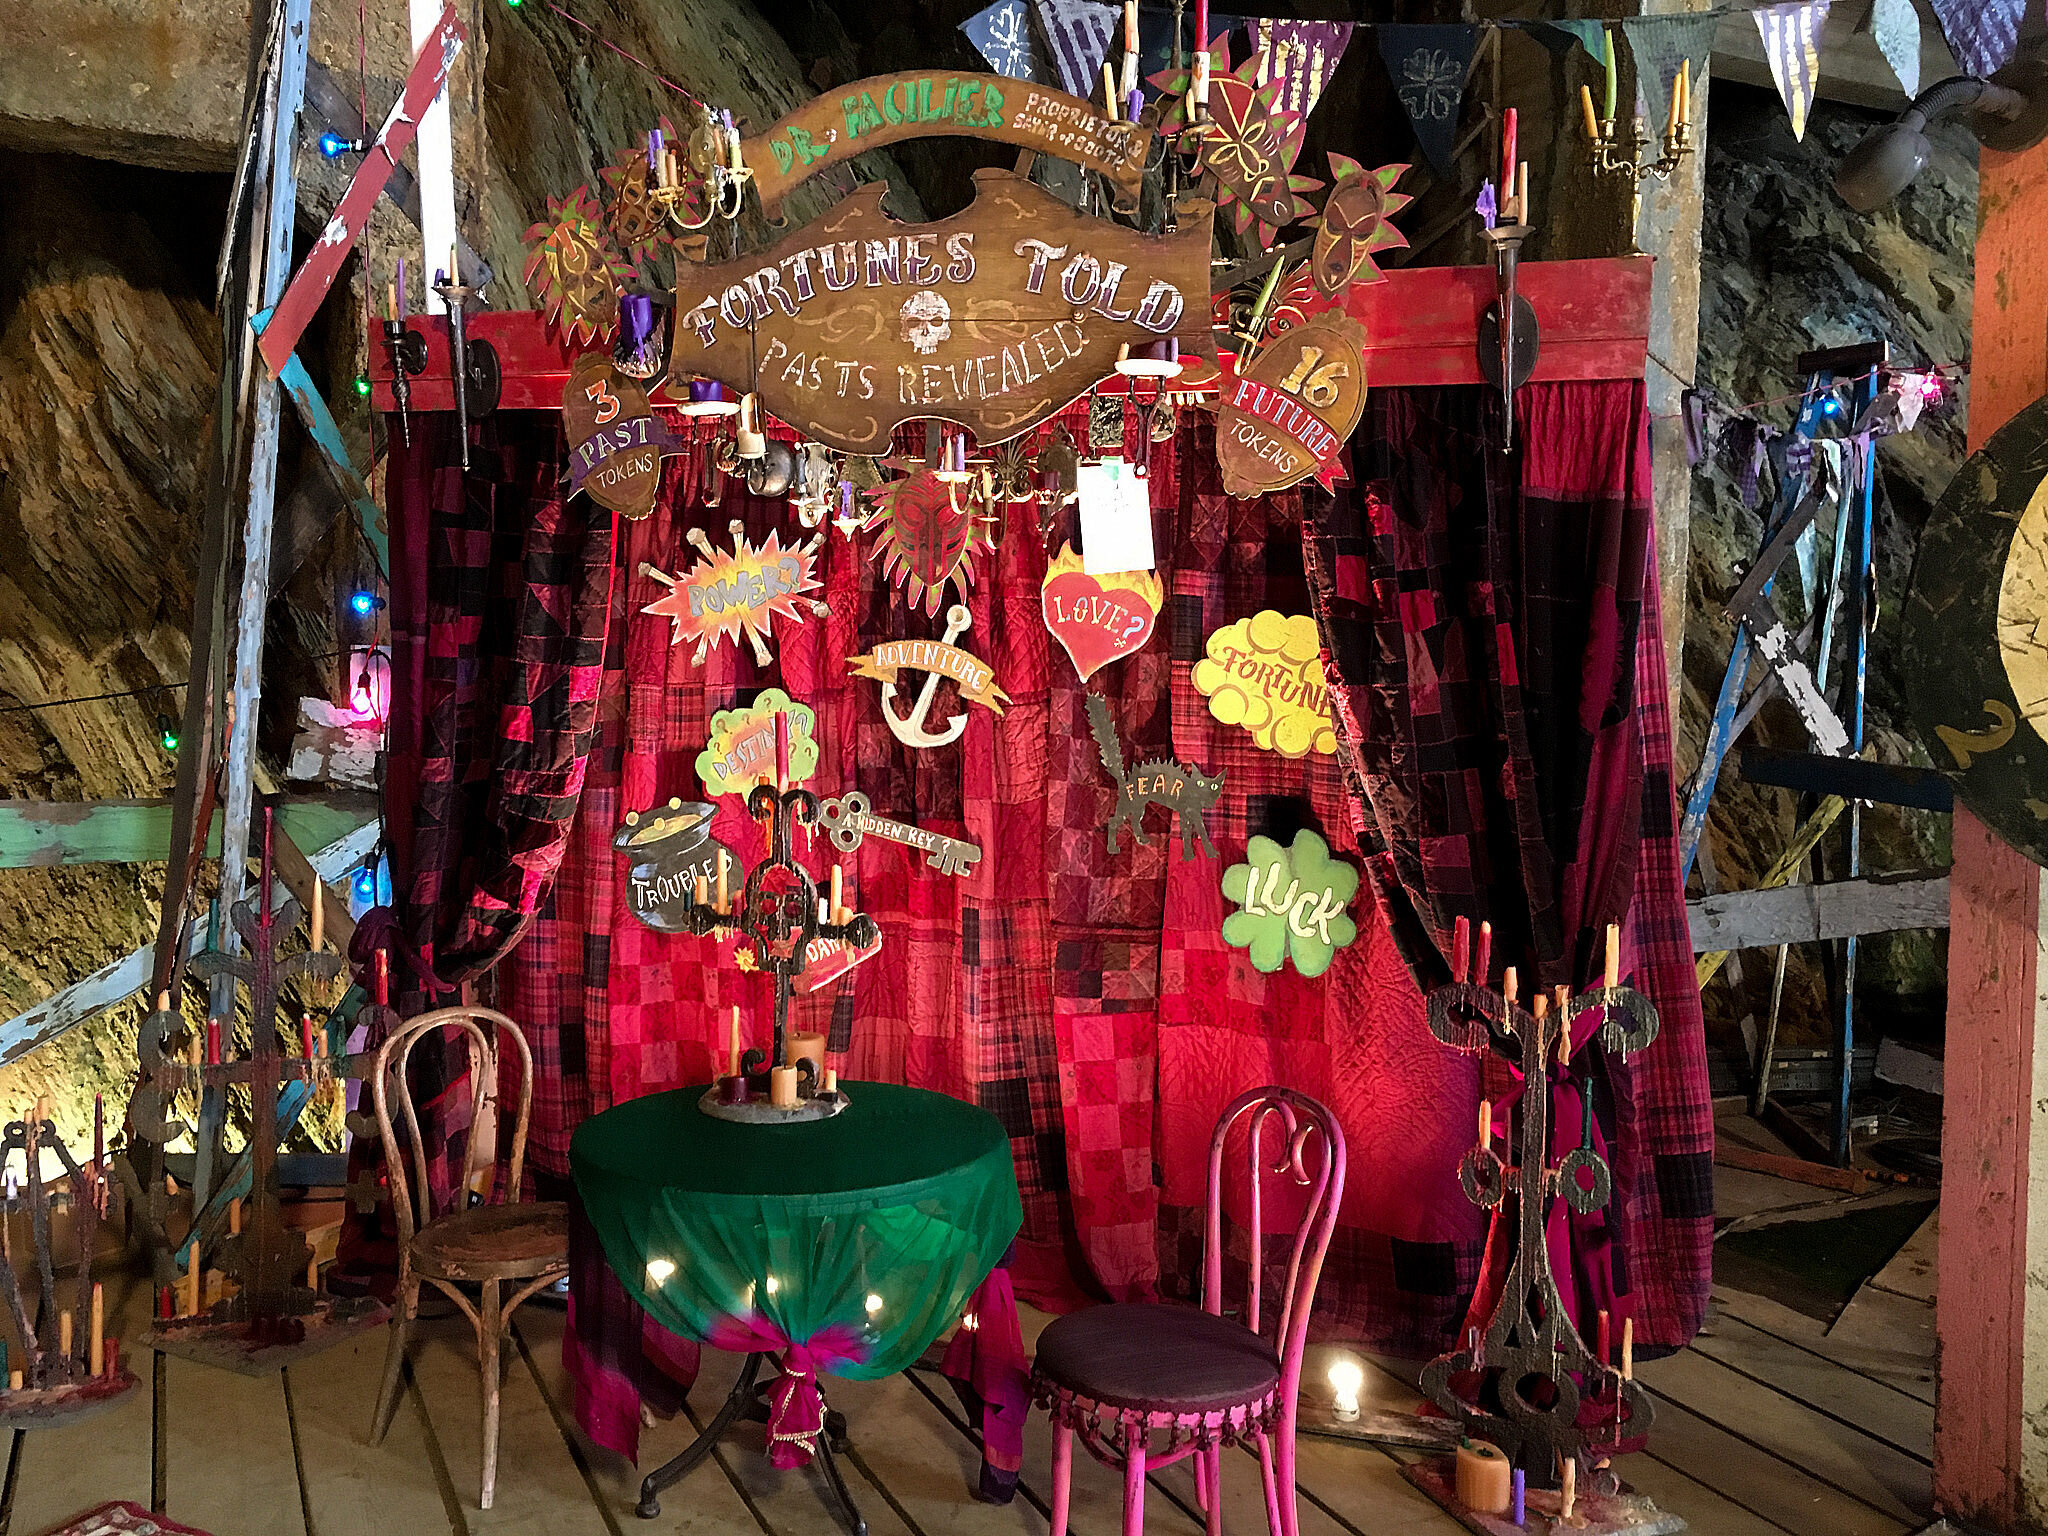 And here's the finished fortune-telling booth on set.